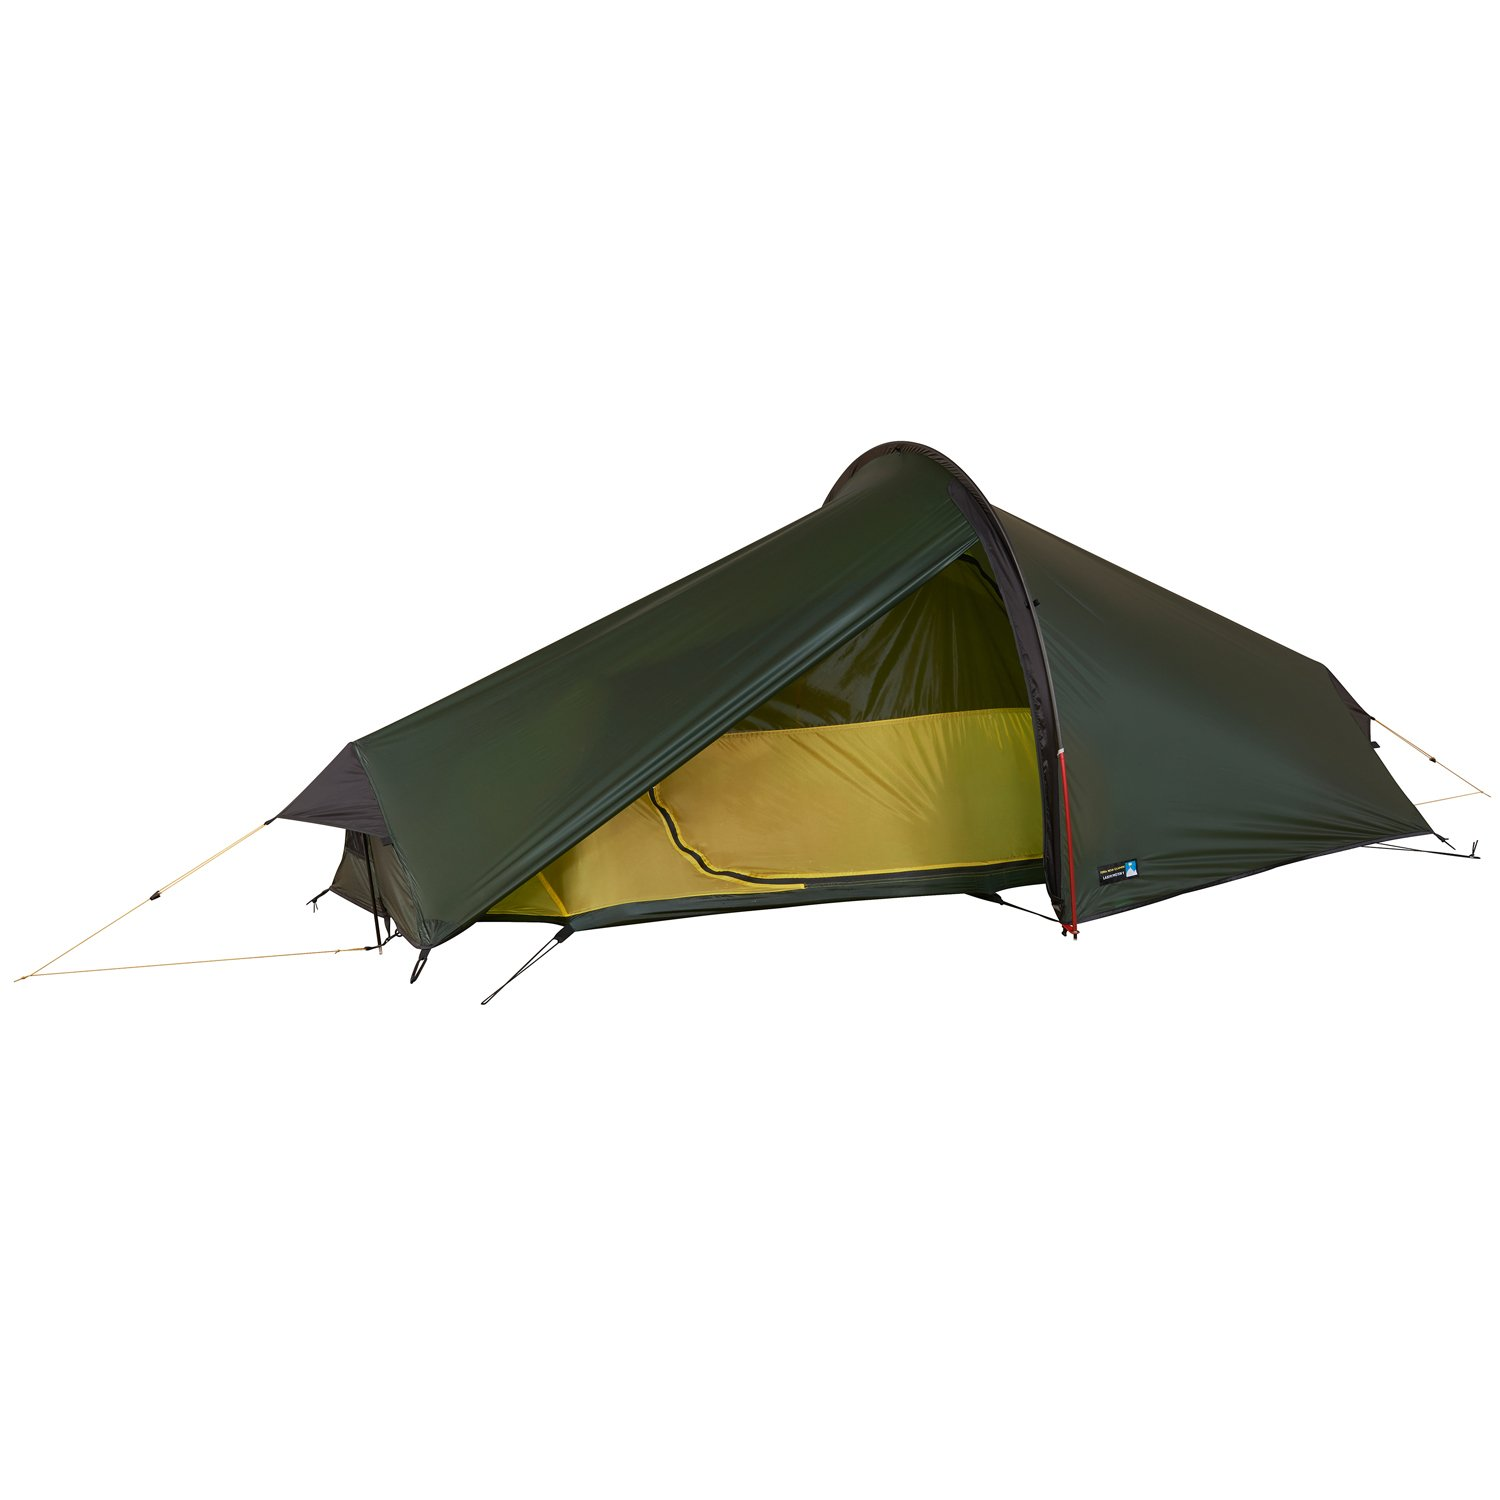 Laser Photon 1 Tent  sc 1 st  Terra Nova Equipment & Laser Photon 1 Tent - Terra Nova Equipment